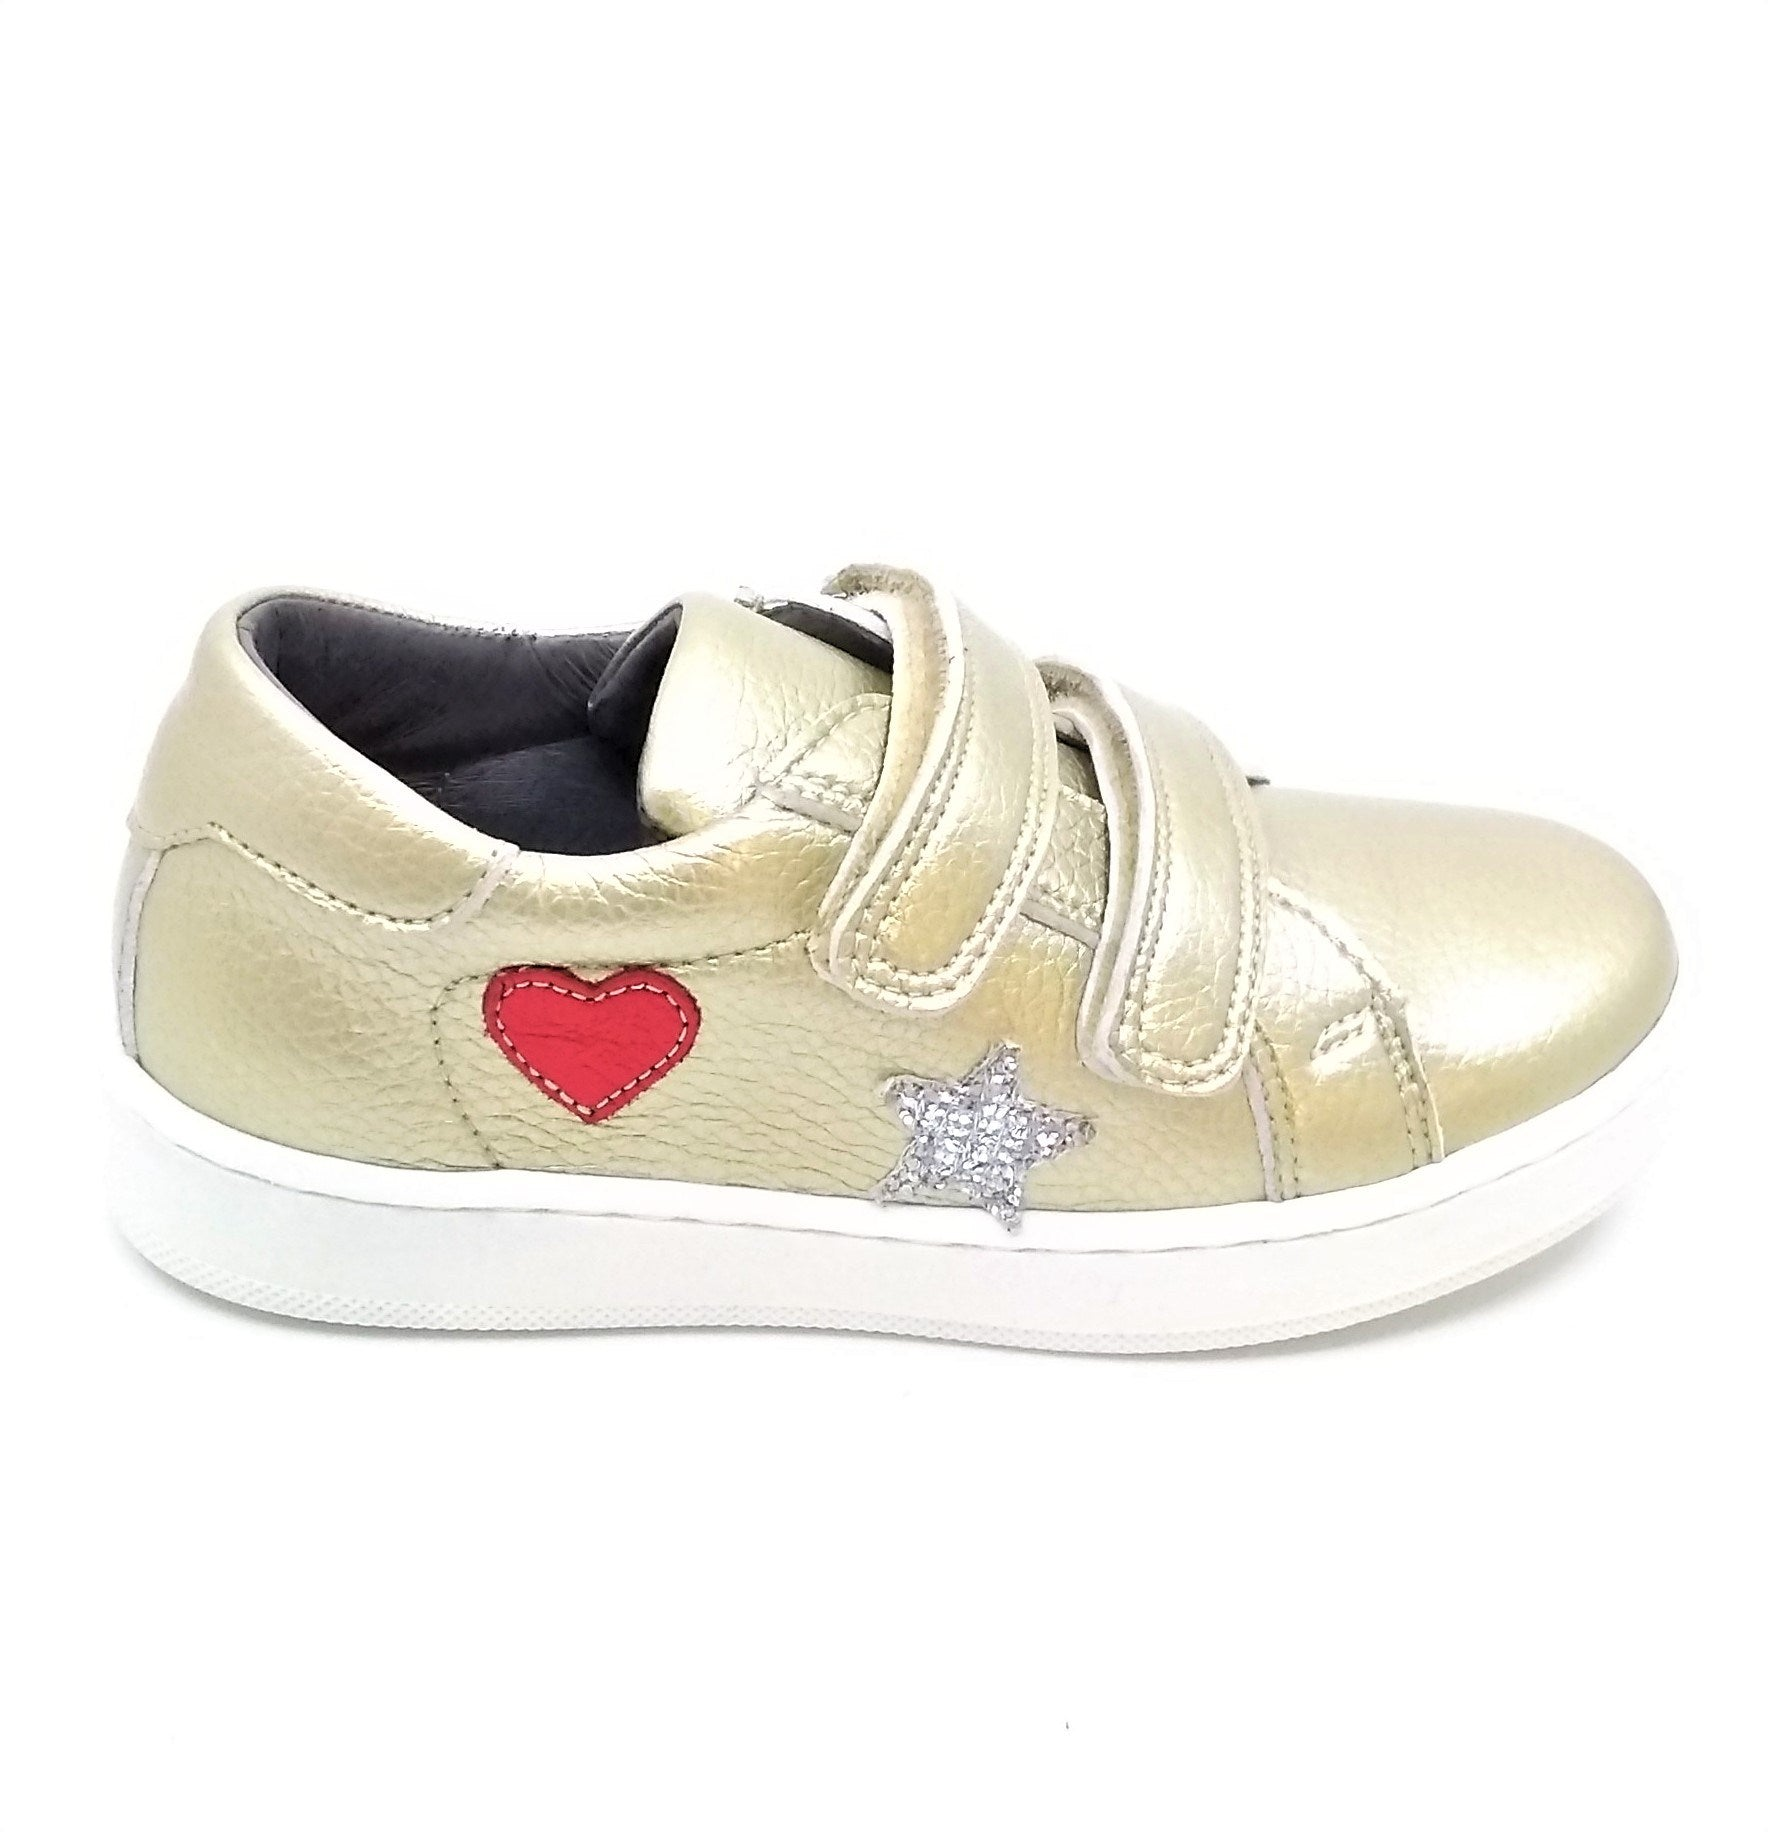 Blublonc Gold Velcro with Heart